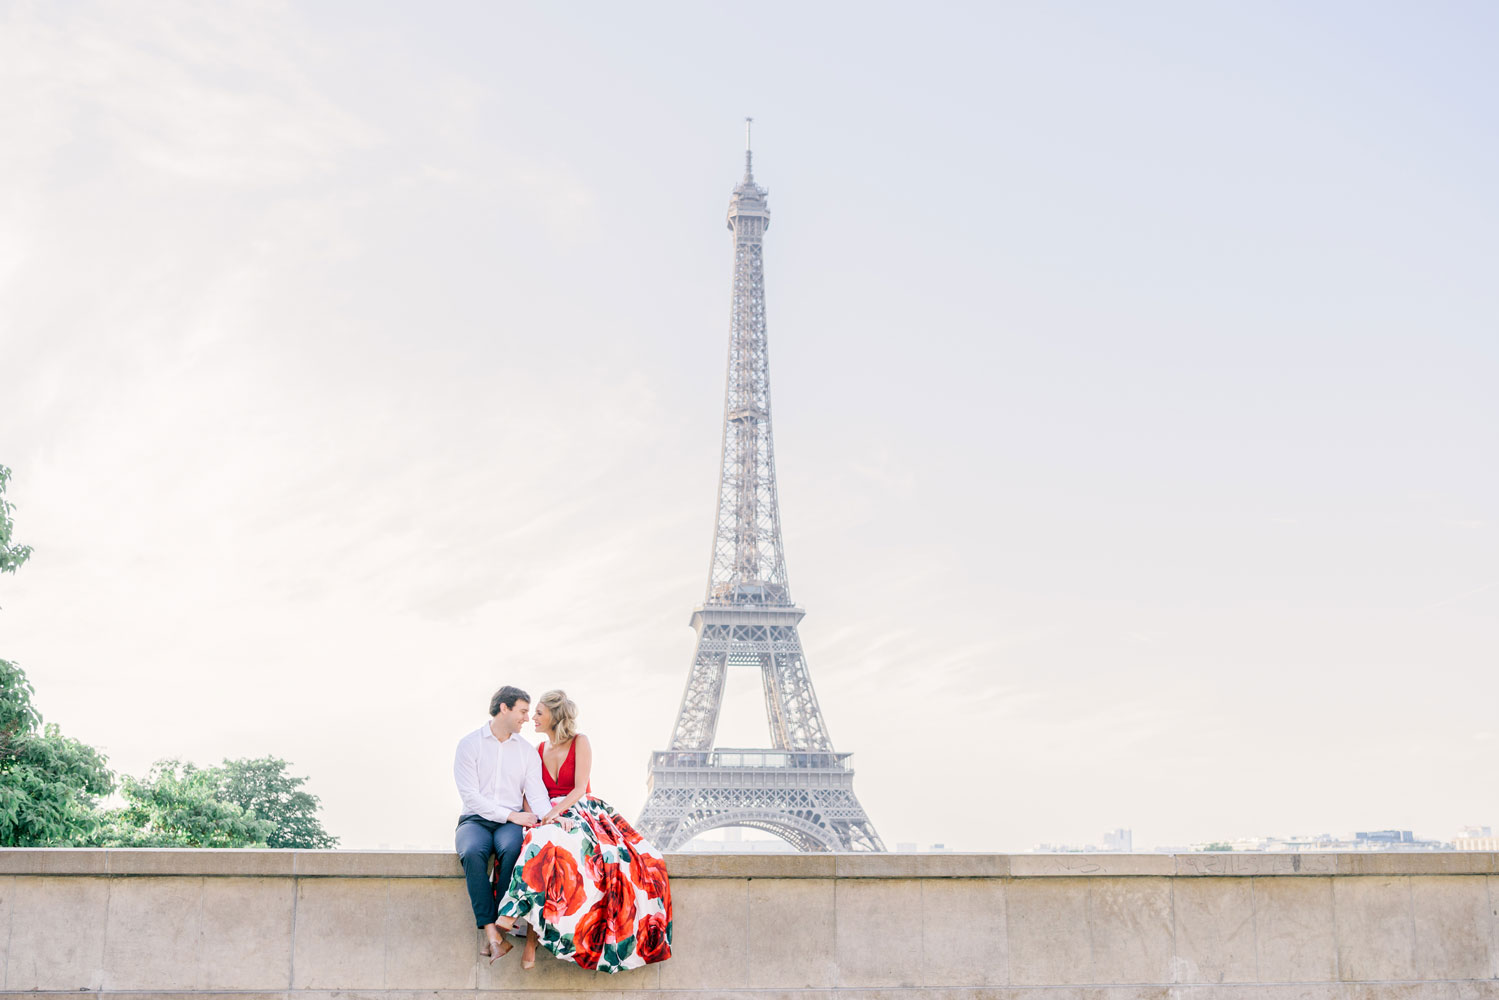 Paris Photographer Tim Moore with our beautiful couple celebrating their wedding anniversary during their photo session in Paris.